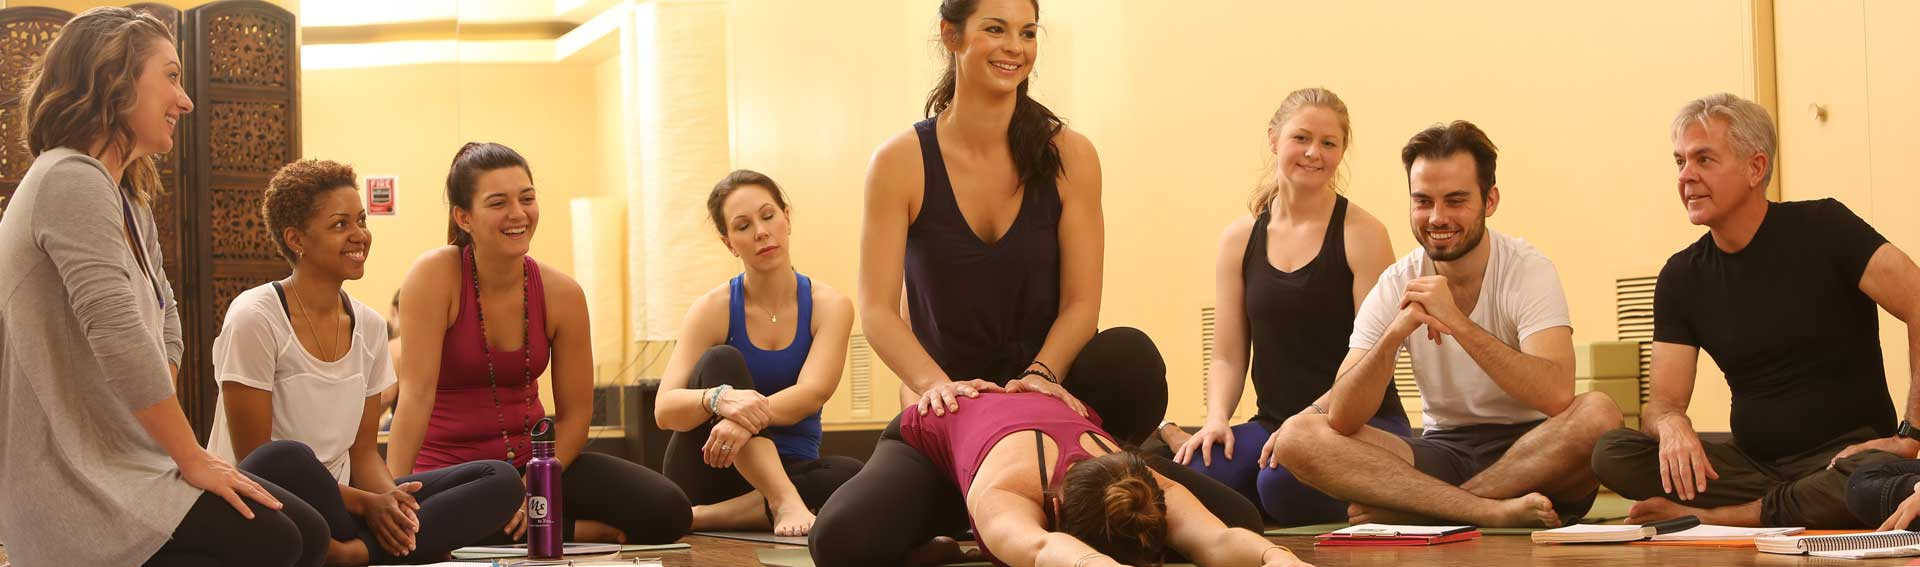 Yoga class learning from instructor